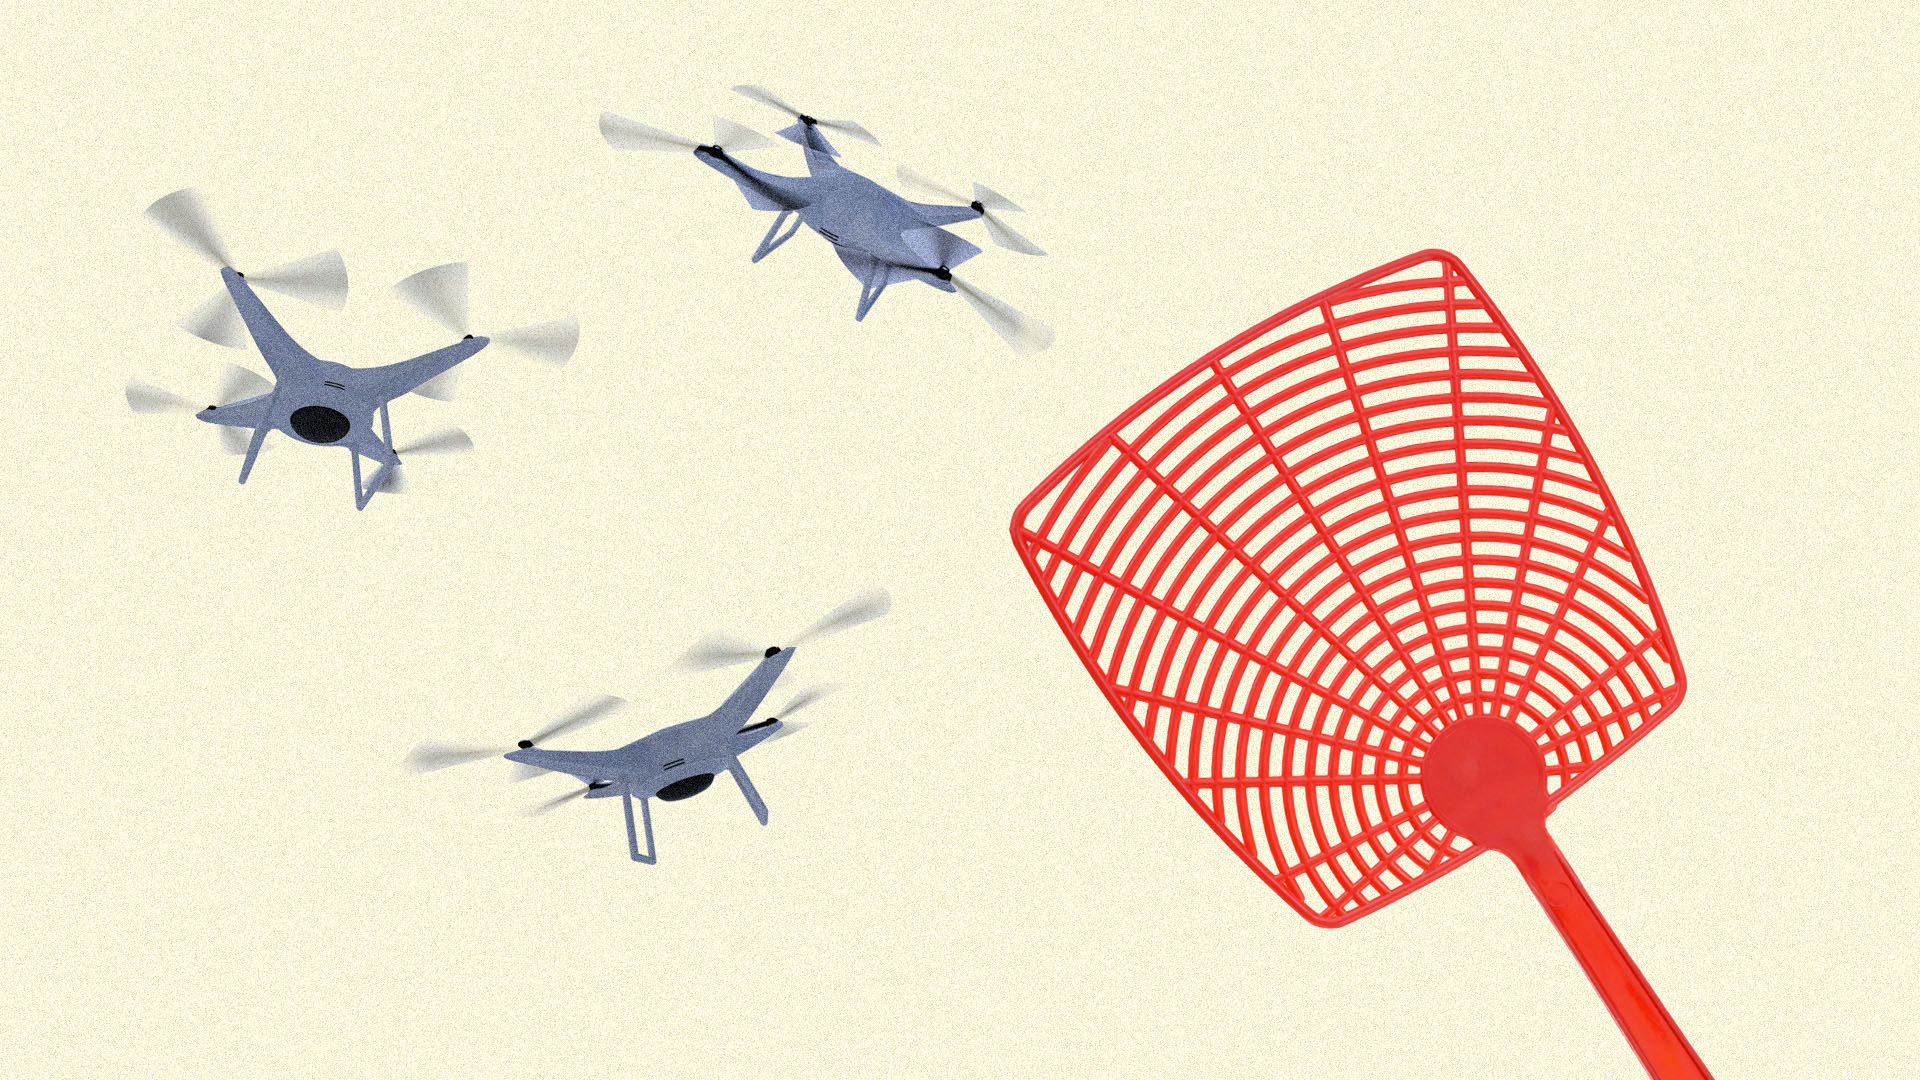 Illustration of buzzing drones around giant fly swatter